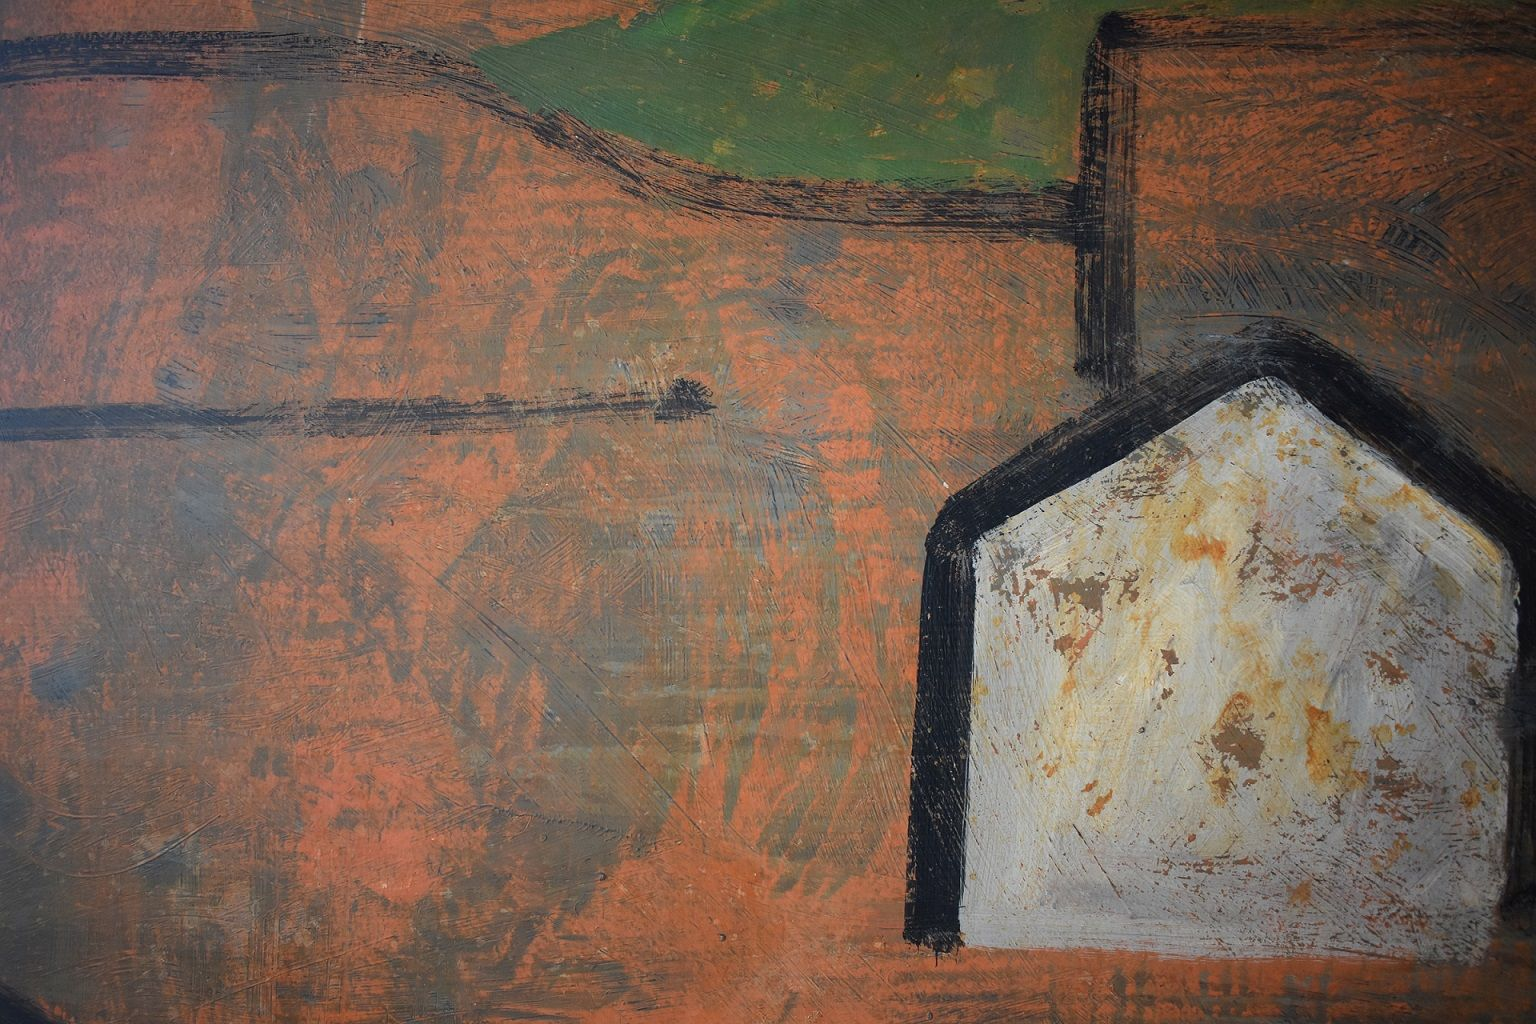 CONG II,Ramon Enrich,Contemporary painting, detail 3